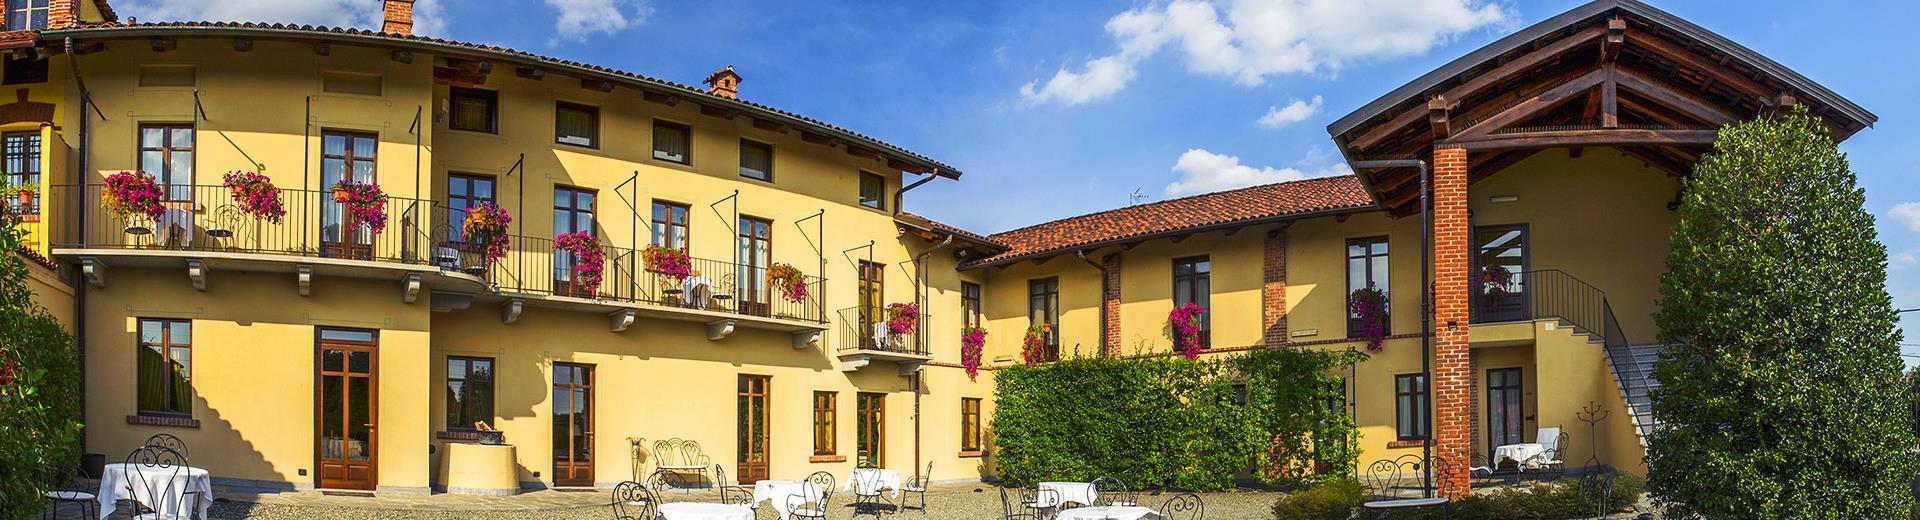 The Best Western Plus Hotel Le Rondini offers you the ideal solution for your stay. A few minutes from Caselle airport and a short distance from the center of Turin and the Allianz Stadium Juventus.